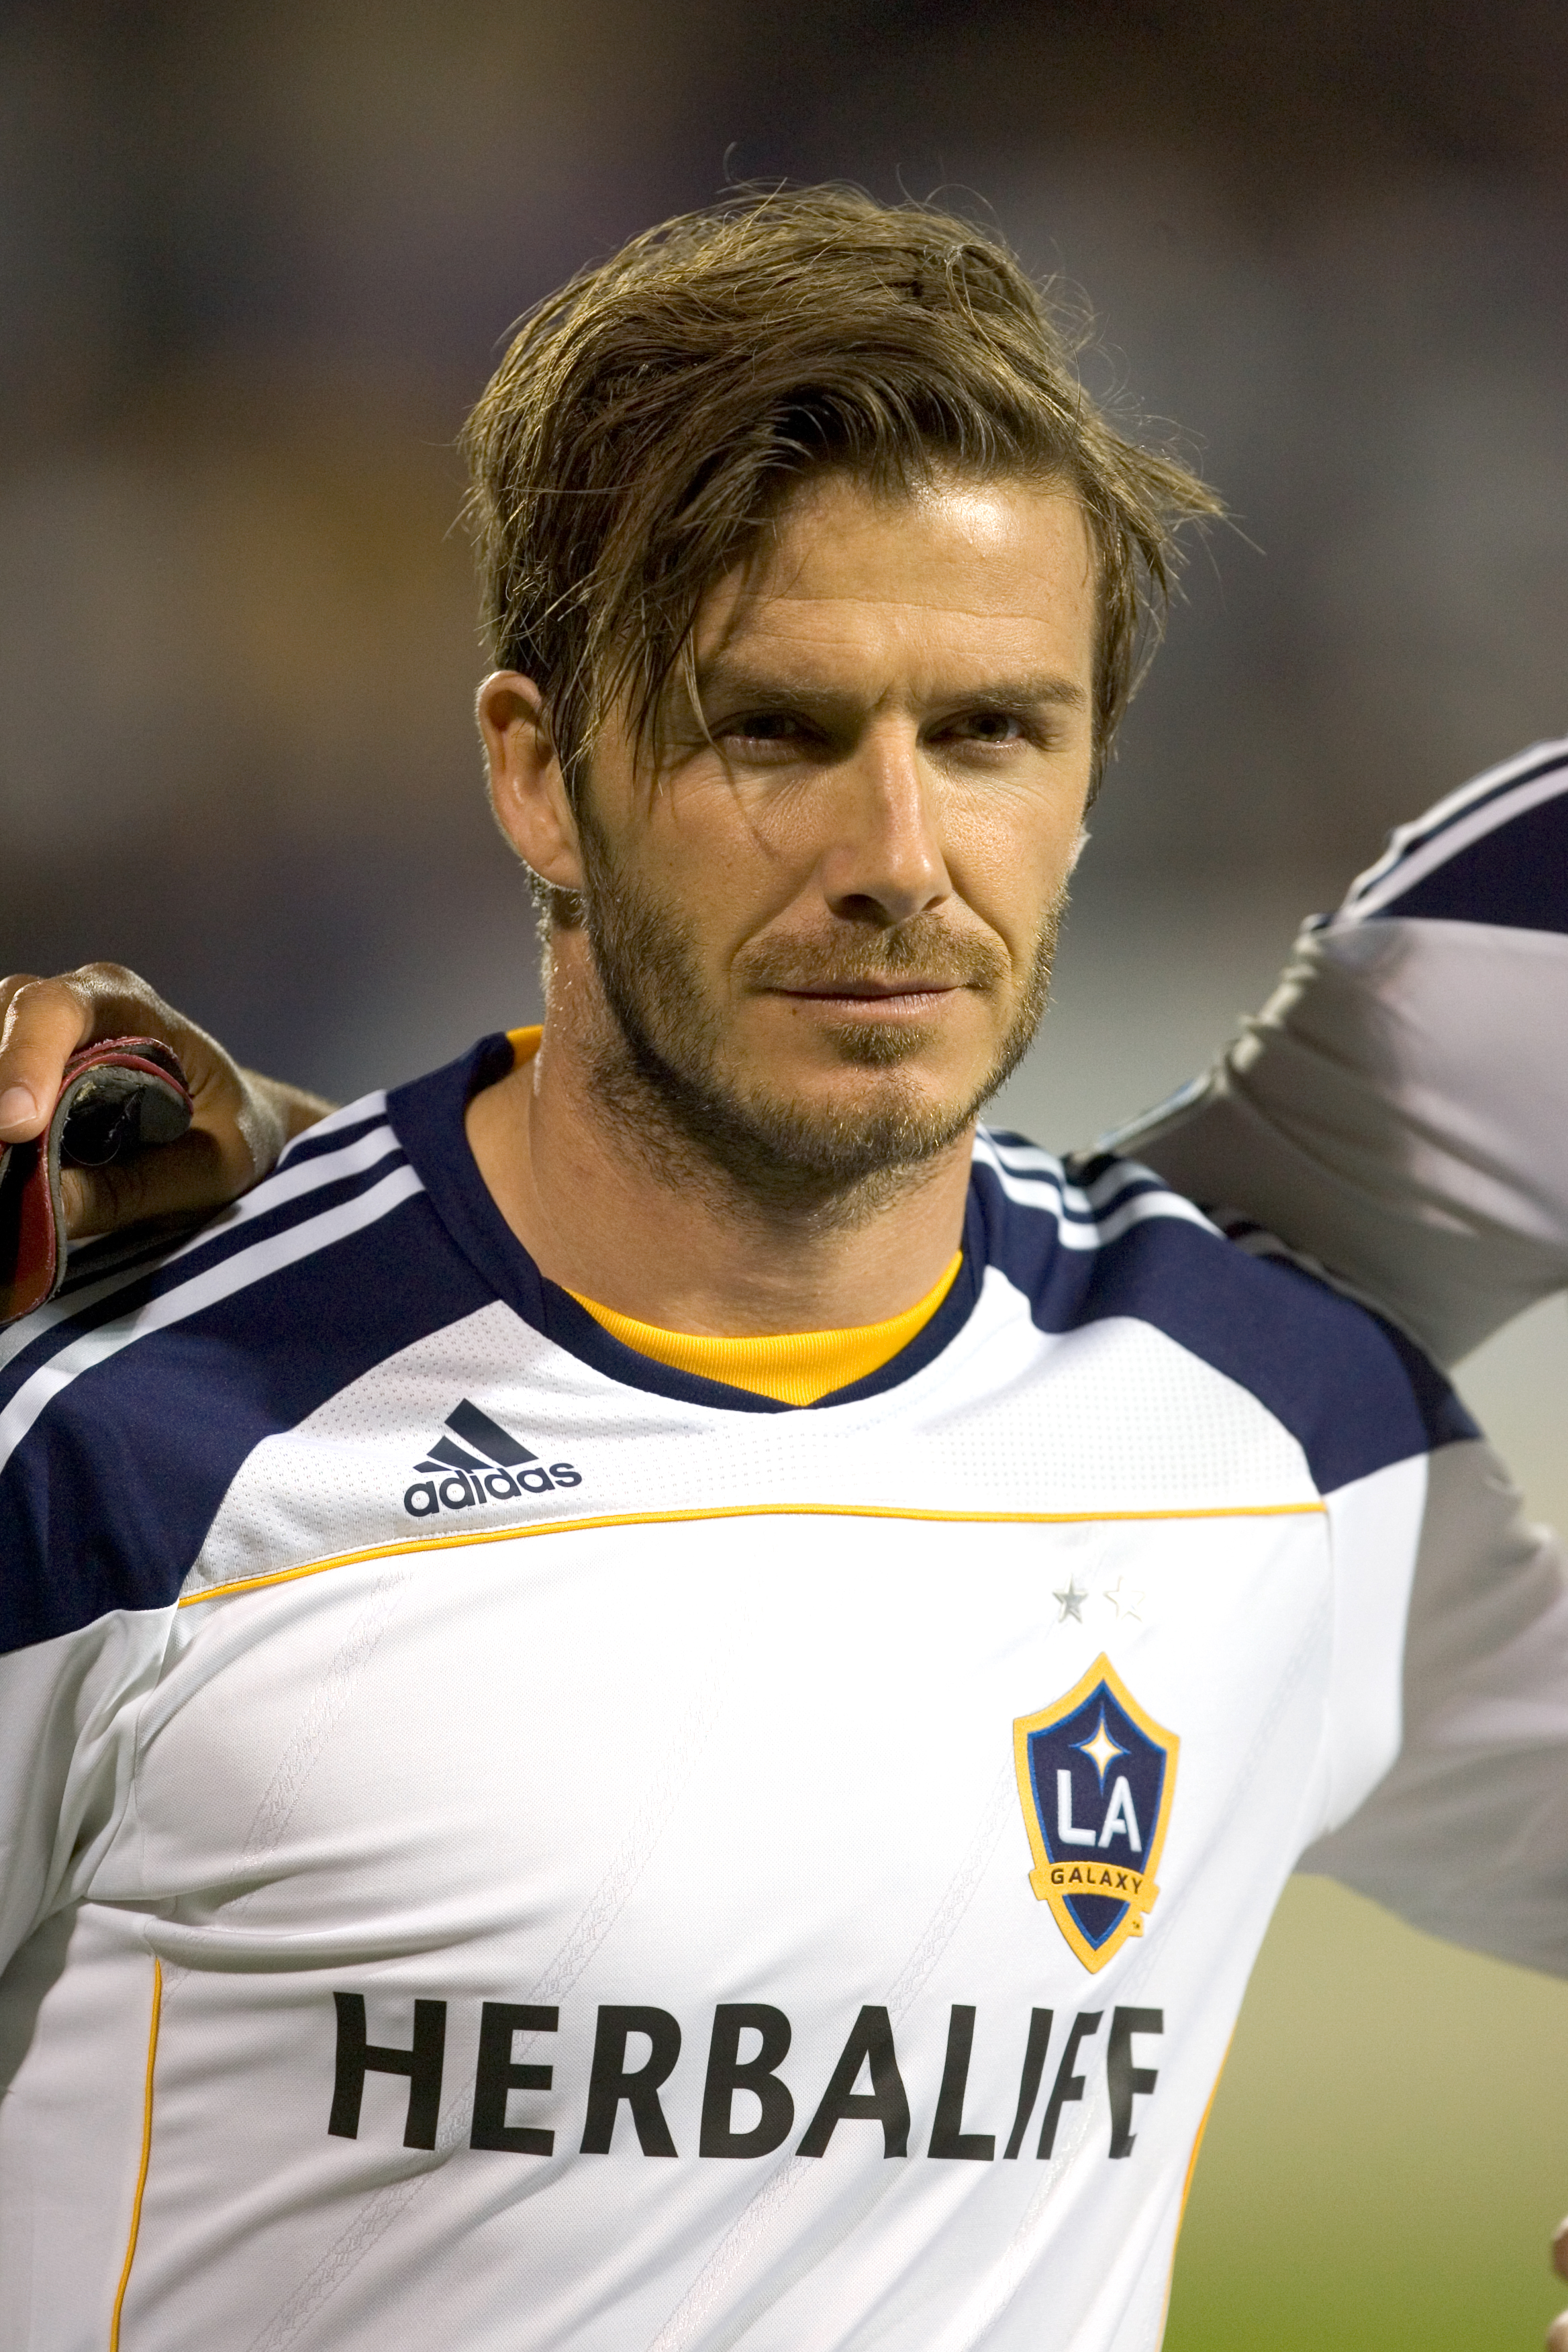 SAN DIEGO, CA - MARCH 2:  David Beckham #23 of the Los Angeles Galaxy looks on prior to the game against Club Tijuana during the second half at the exhibition game at Torero Stadium on March 2, 2011 in San Diego, California. (Photo by Kent Horner/Getty Im